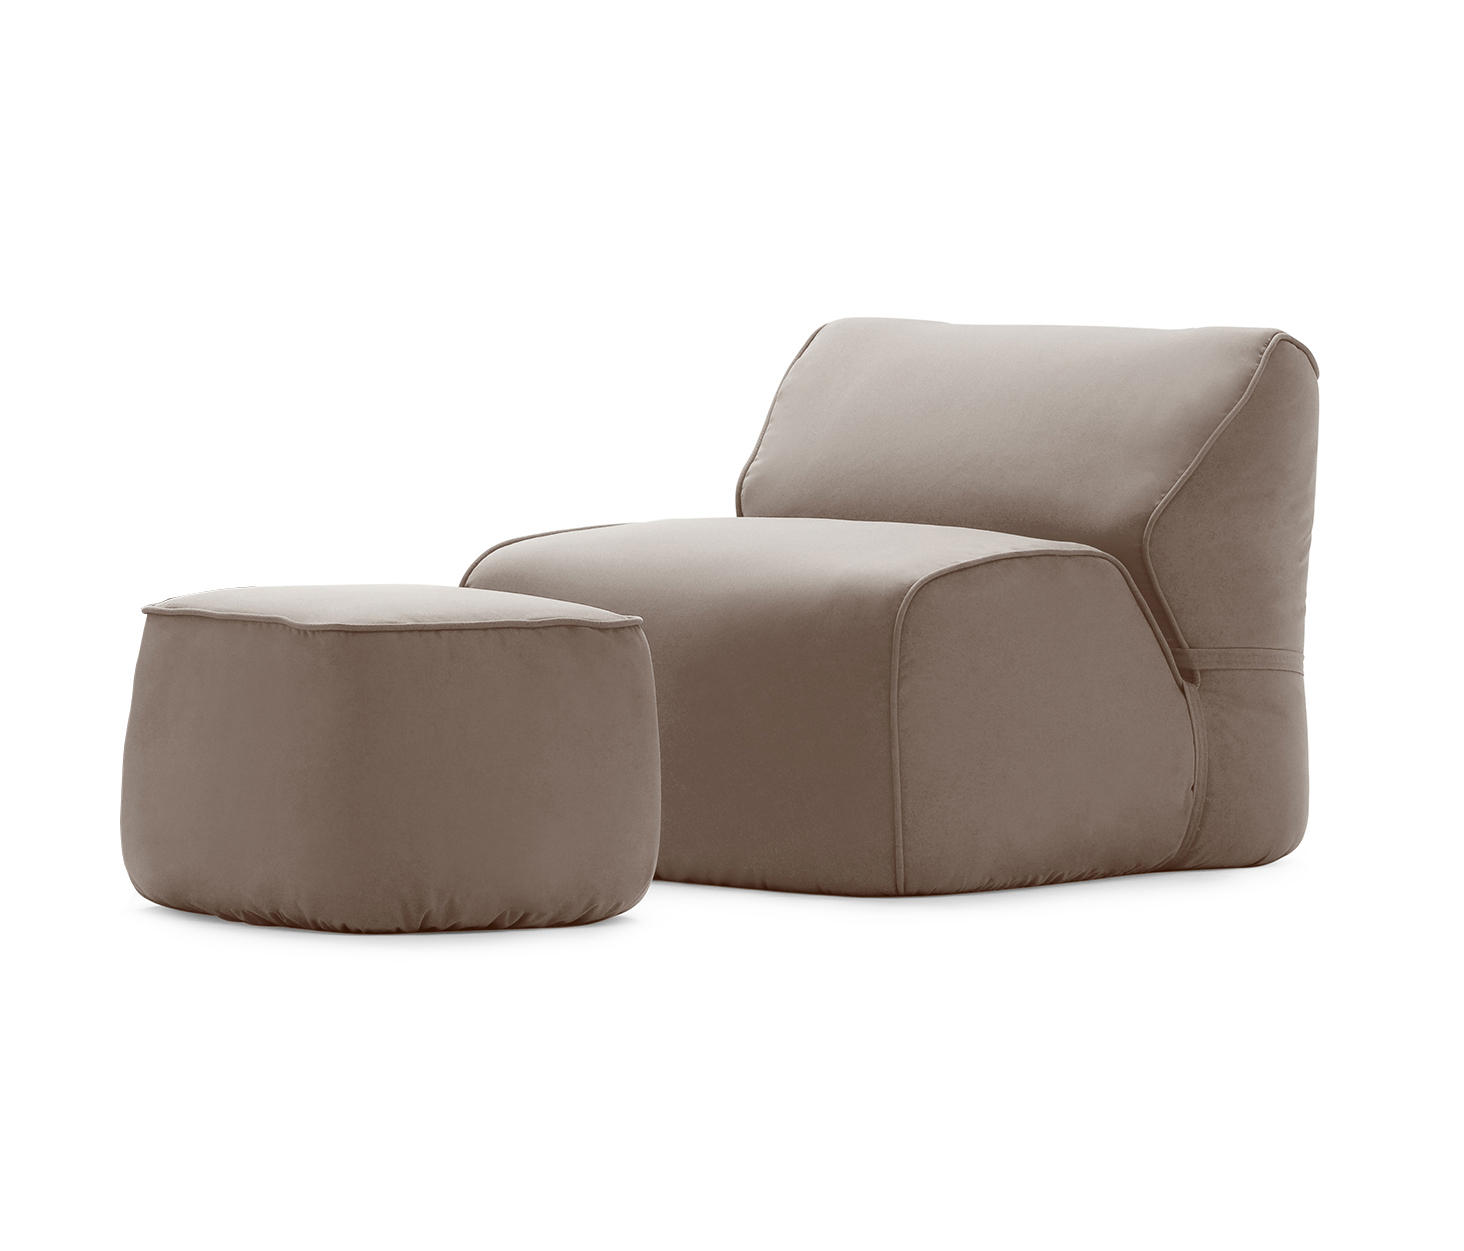 Soft Armchair Armchairs From Exteta Architonic